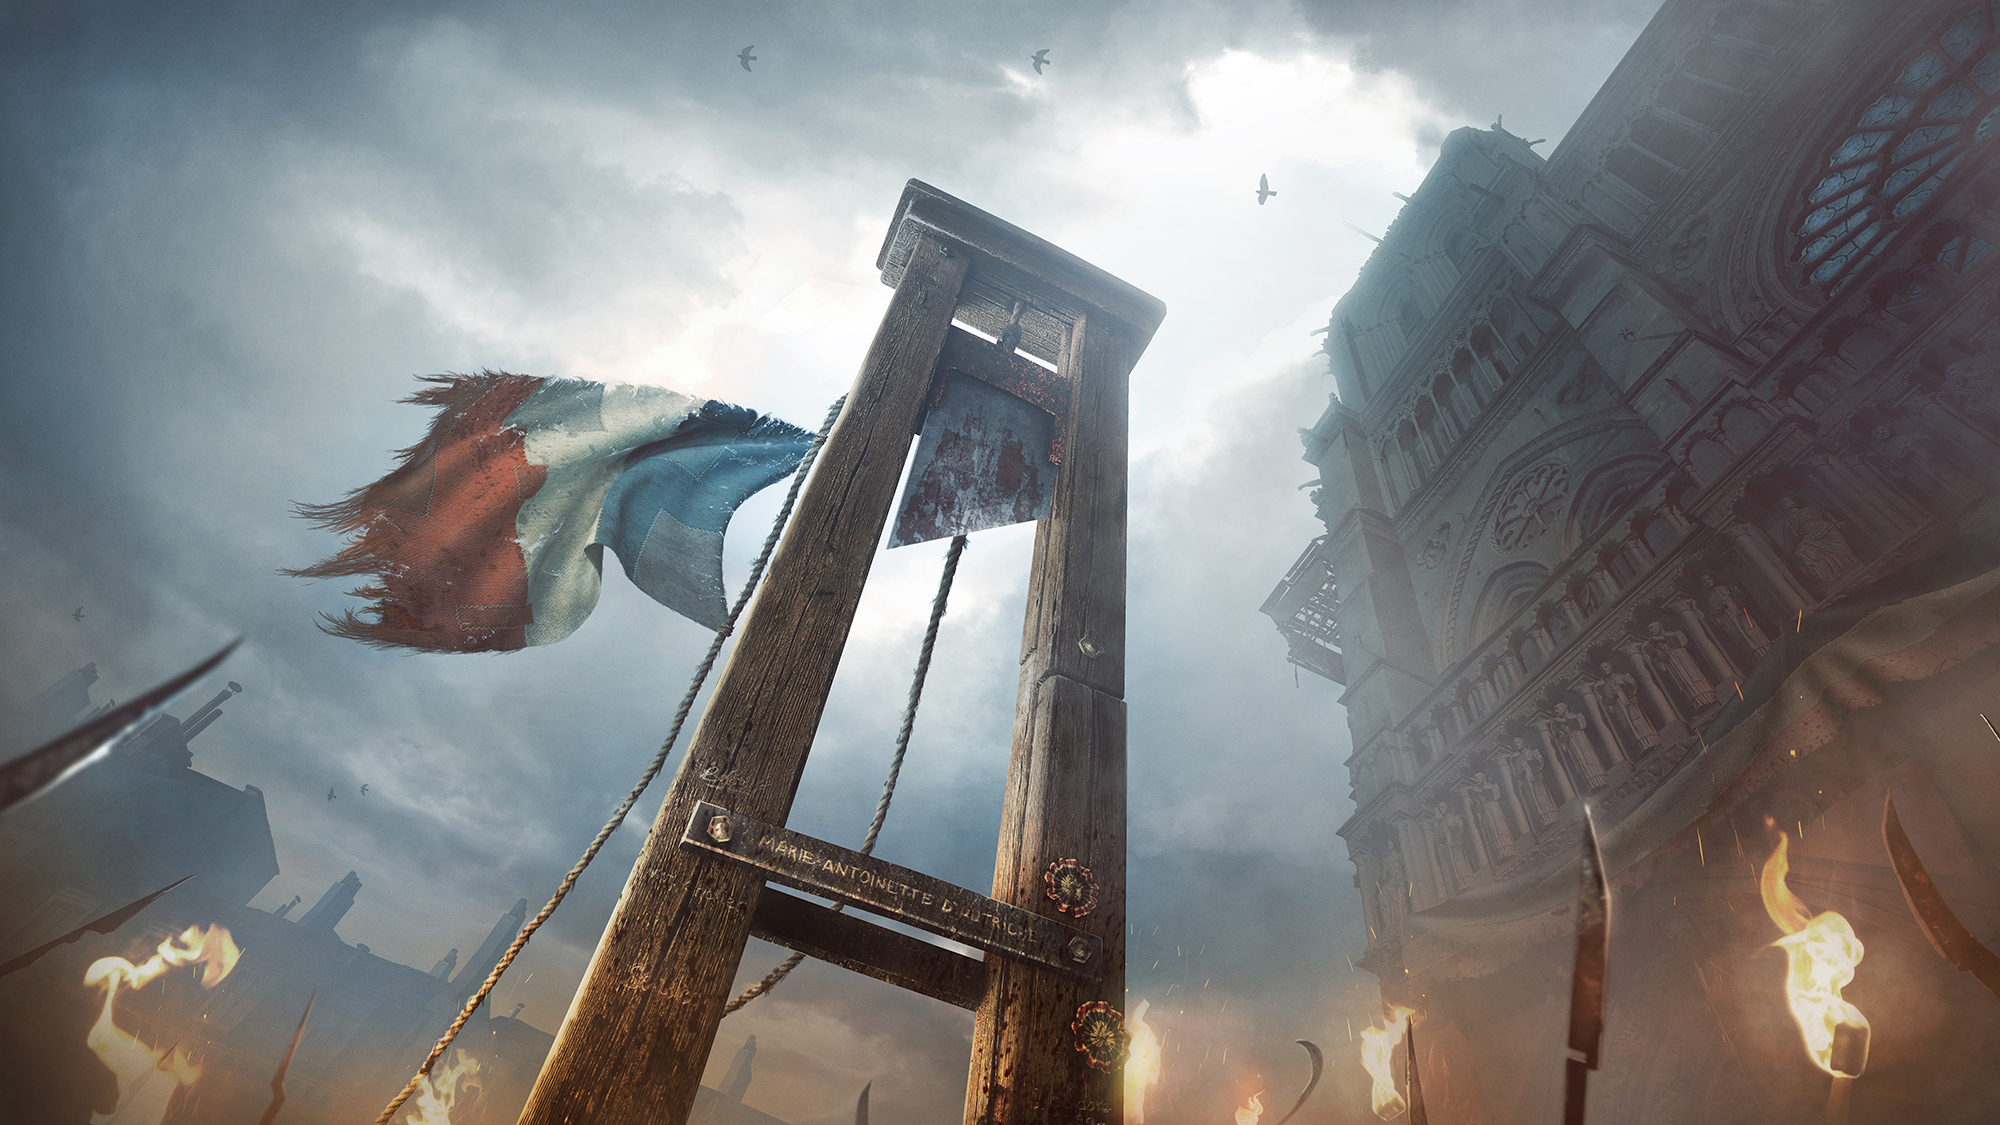 acu_hr_helixguillotine_e3_140609_11ampst.jpg